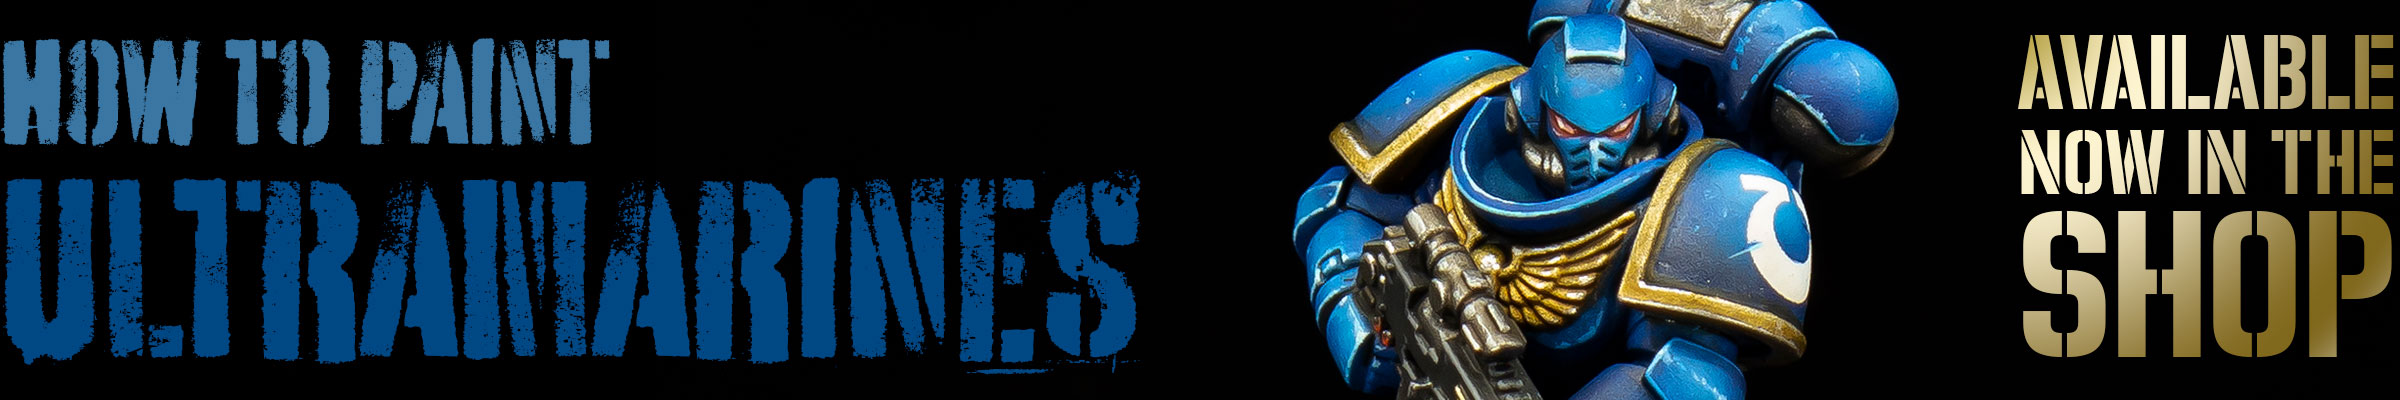 How to paint Ultramarines PDF painting guide now available in the shop